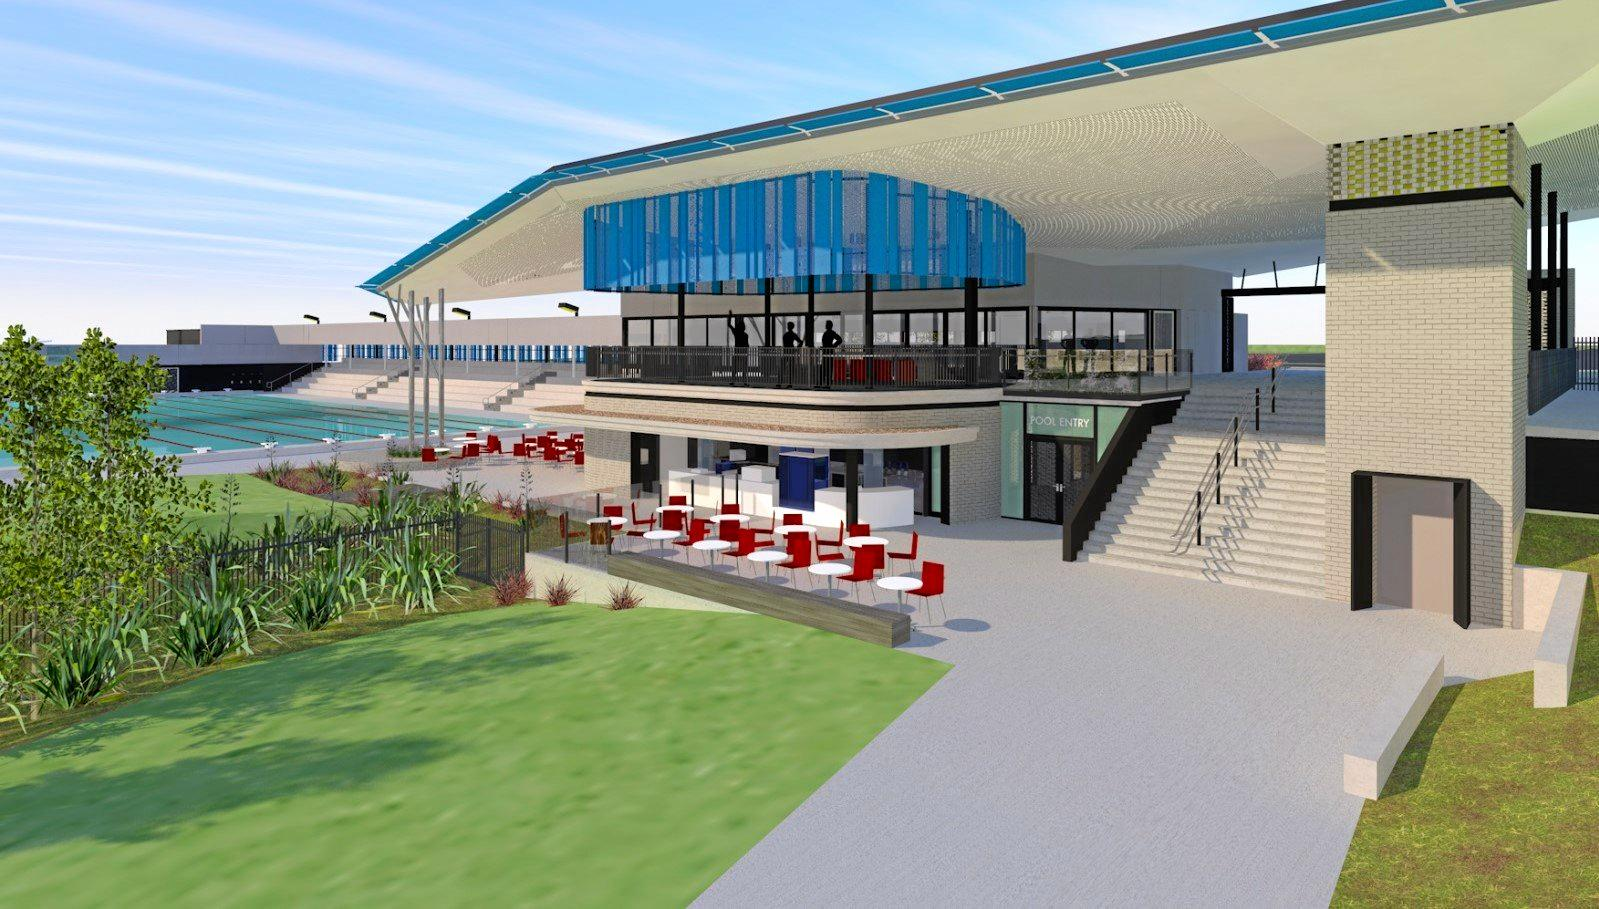 SWISH SWIMMING: An artist's impression of the impressive looking St Andrew's Anglican College aquatic centre, which is predicted to have a short-term impact on patronage at the Noosa Aquatic Centre.